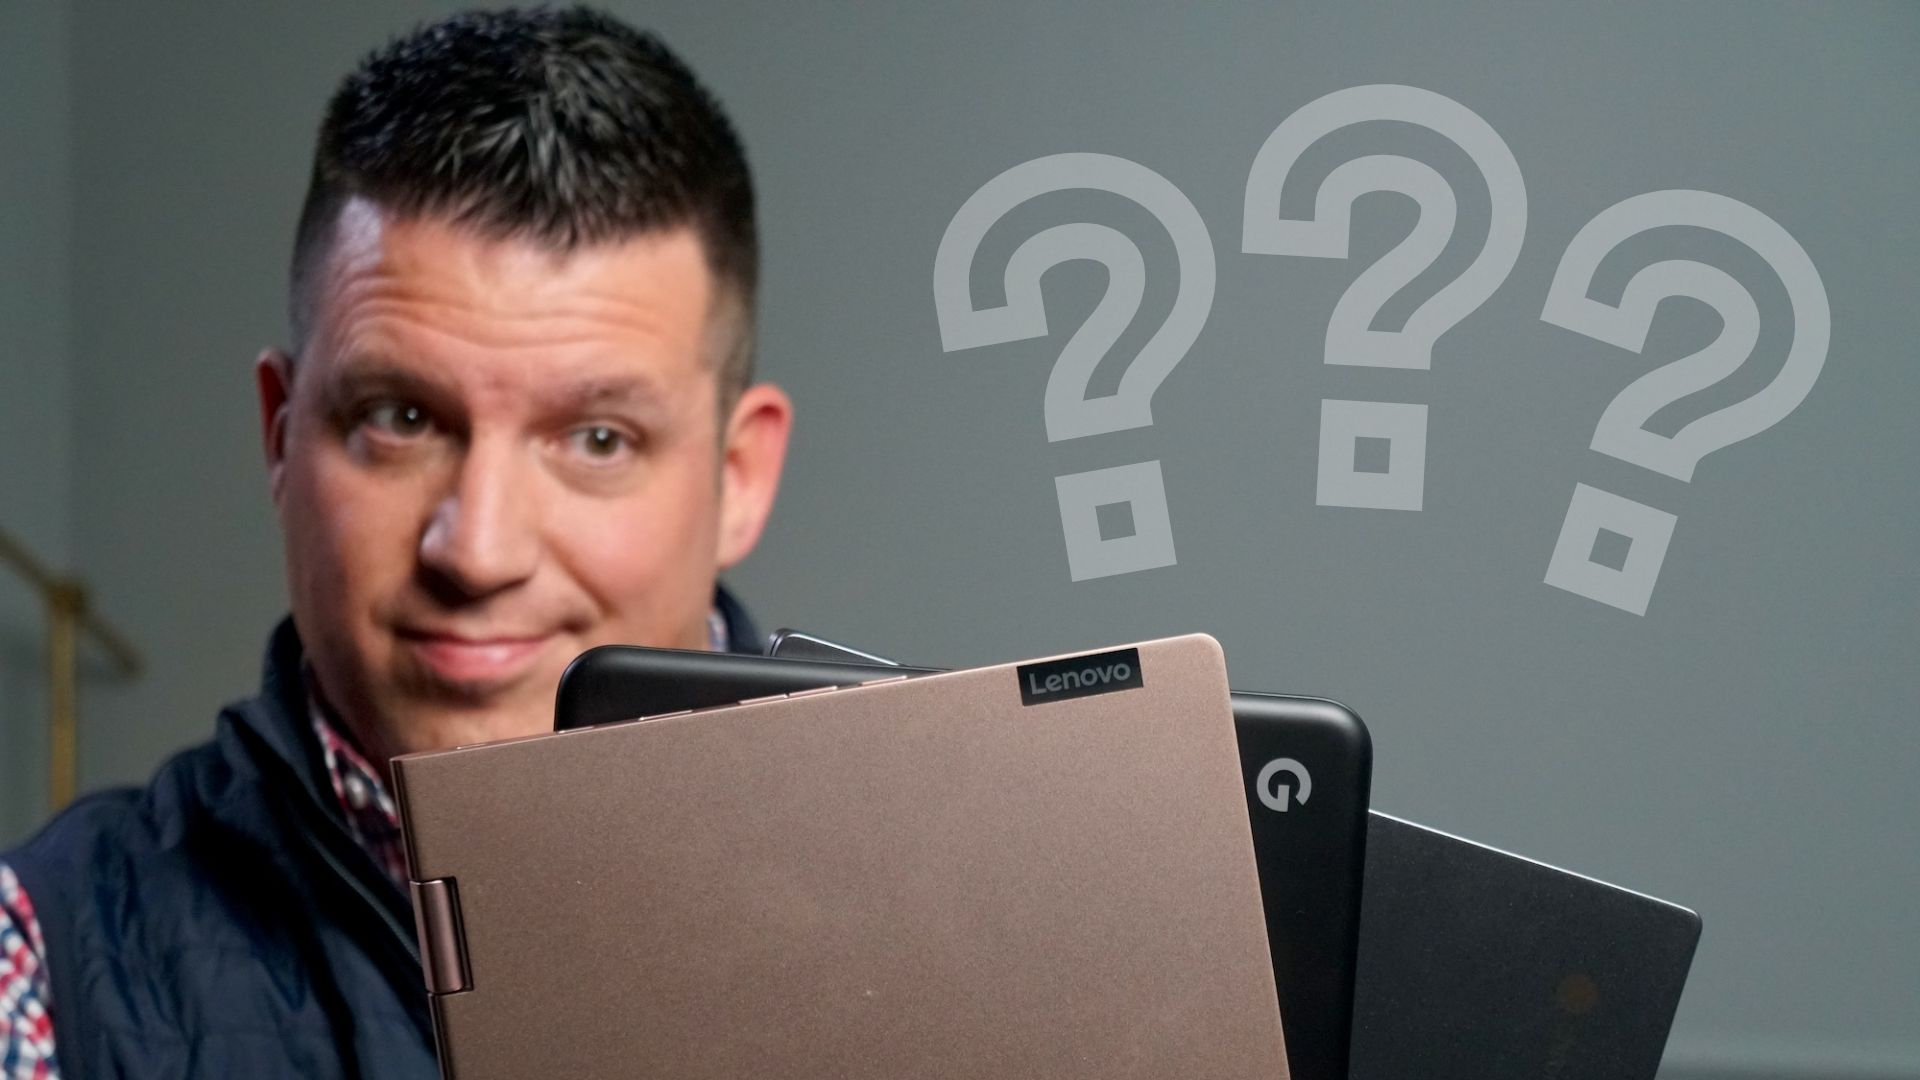 How to choose the right Chromebook with 5 simple questions [VIDEO]